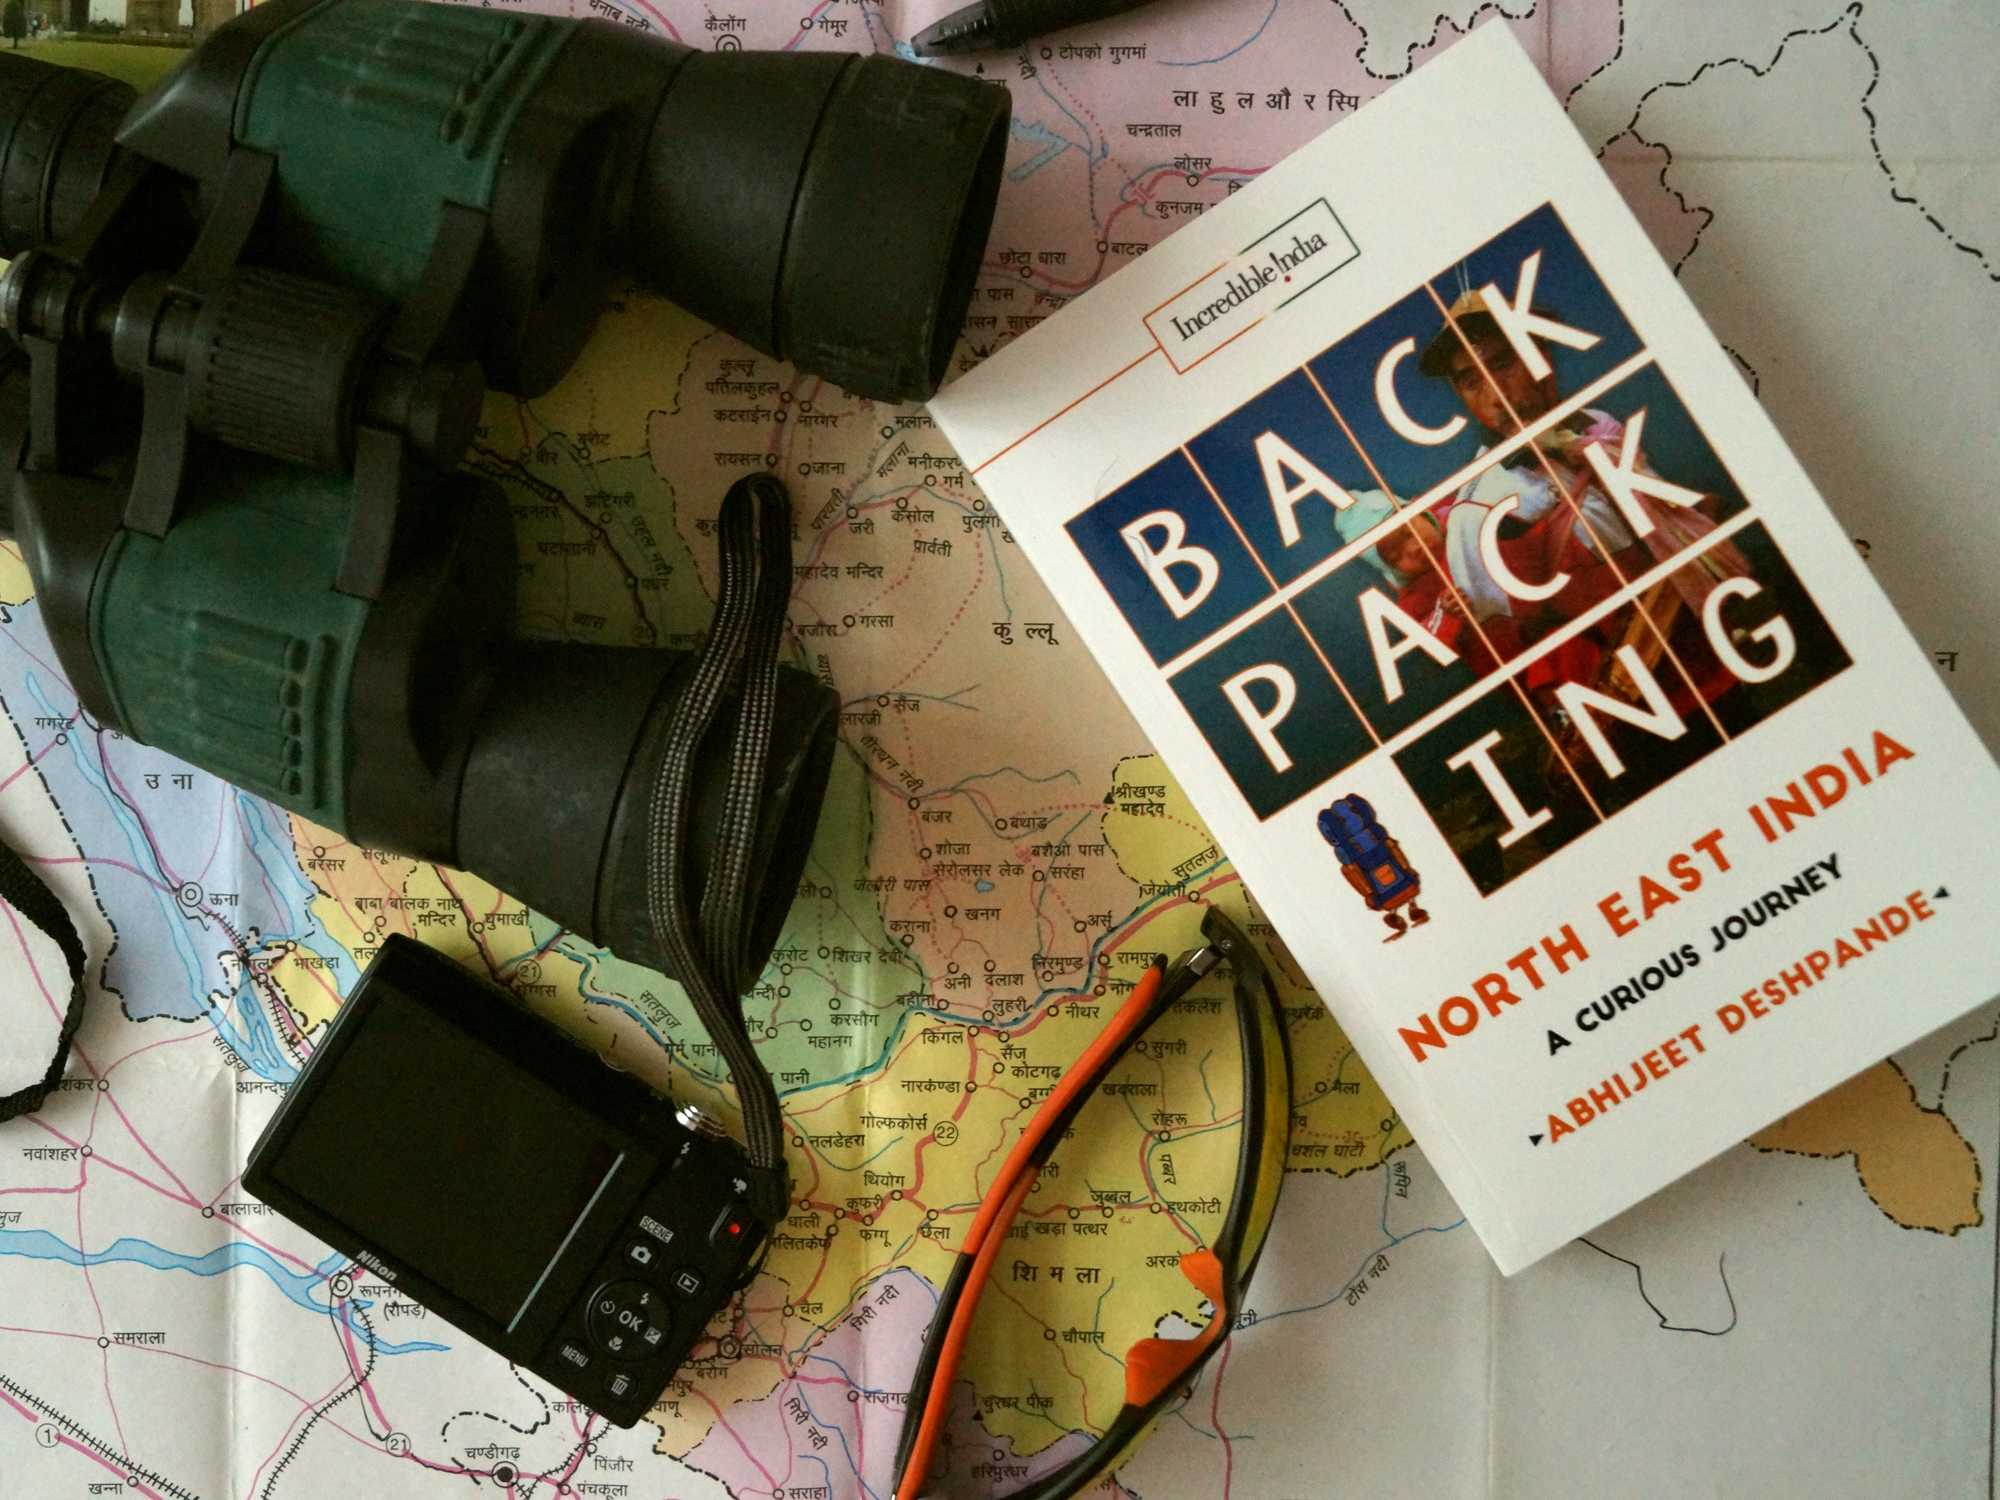 What are some ultimate tips for travel planning?